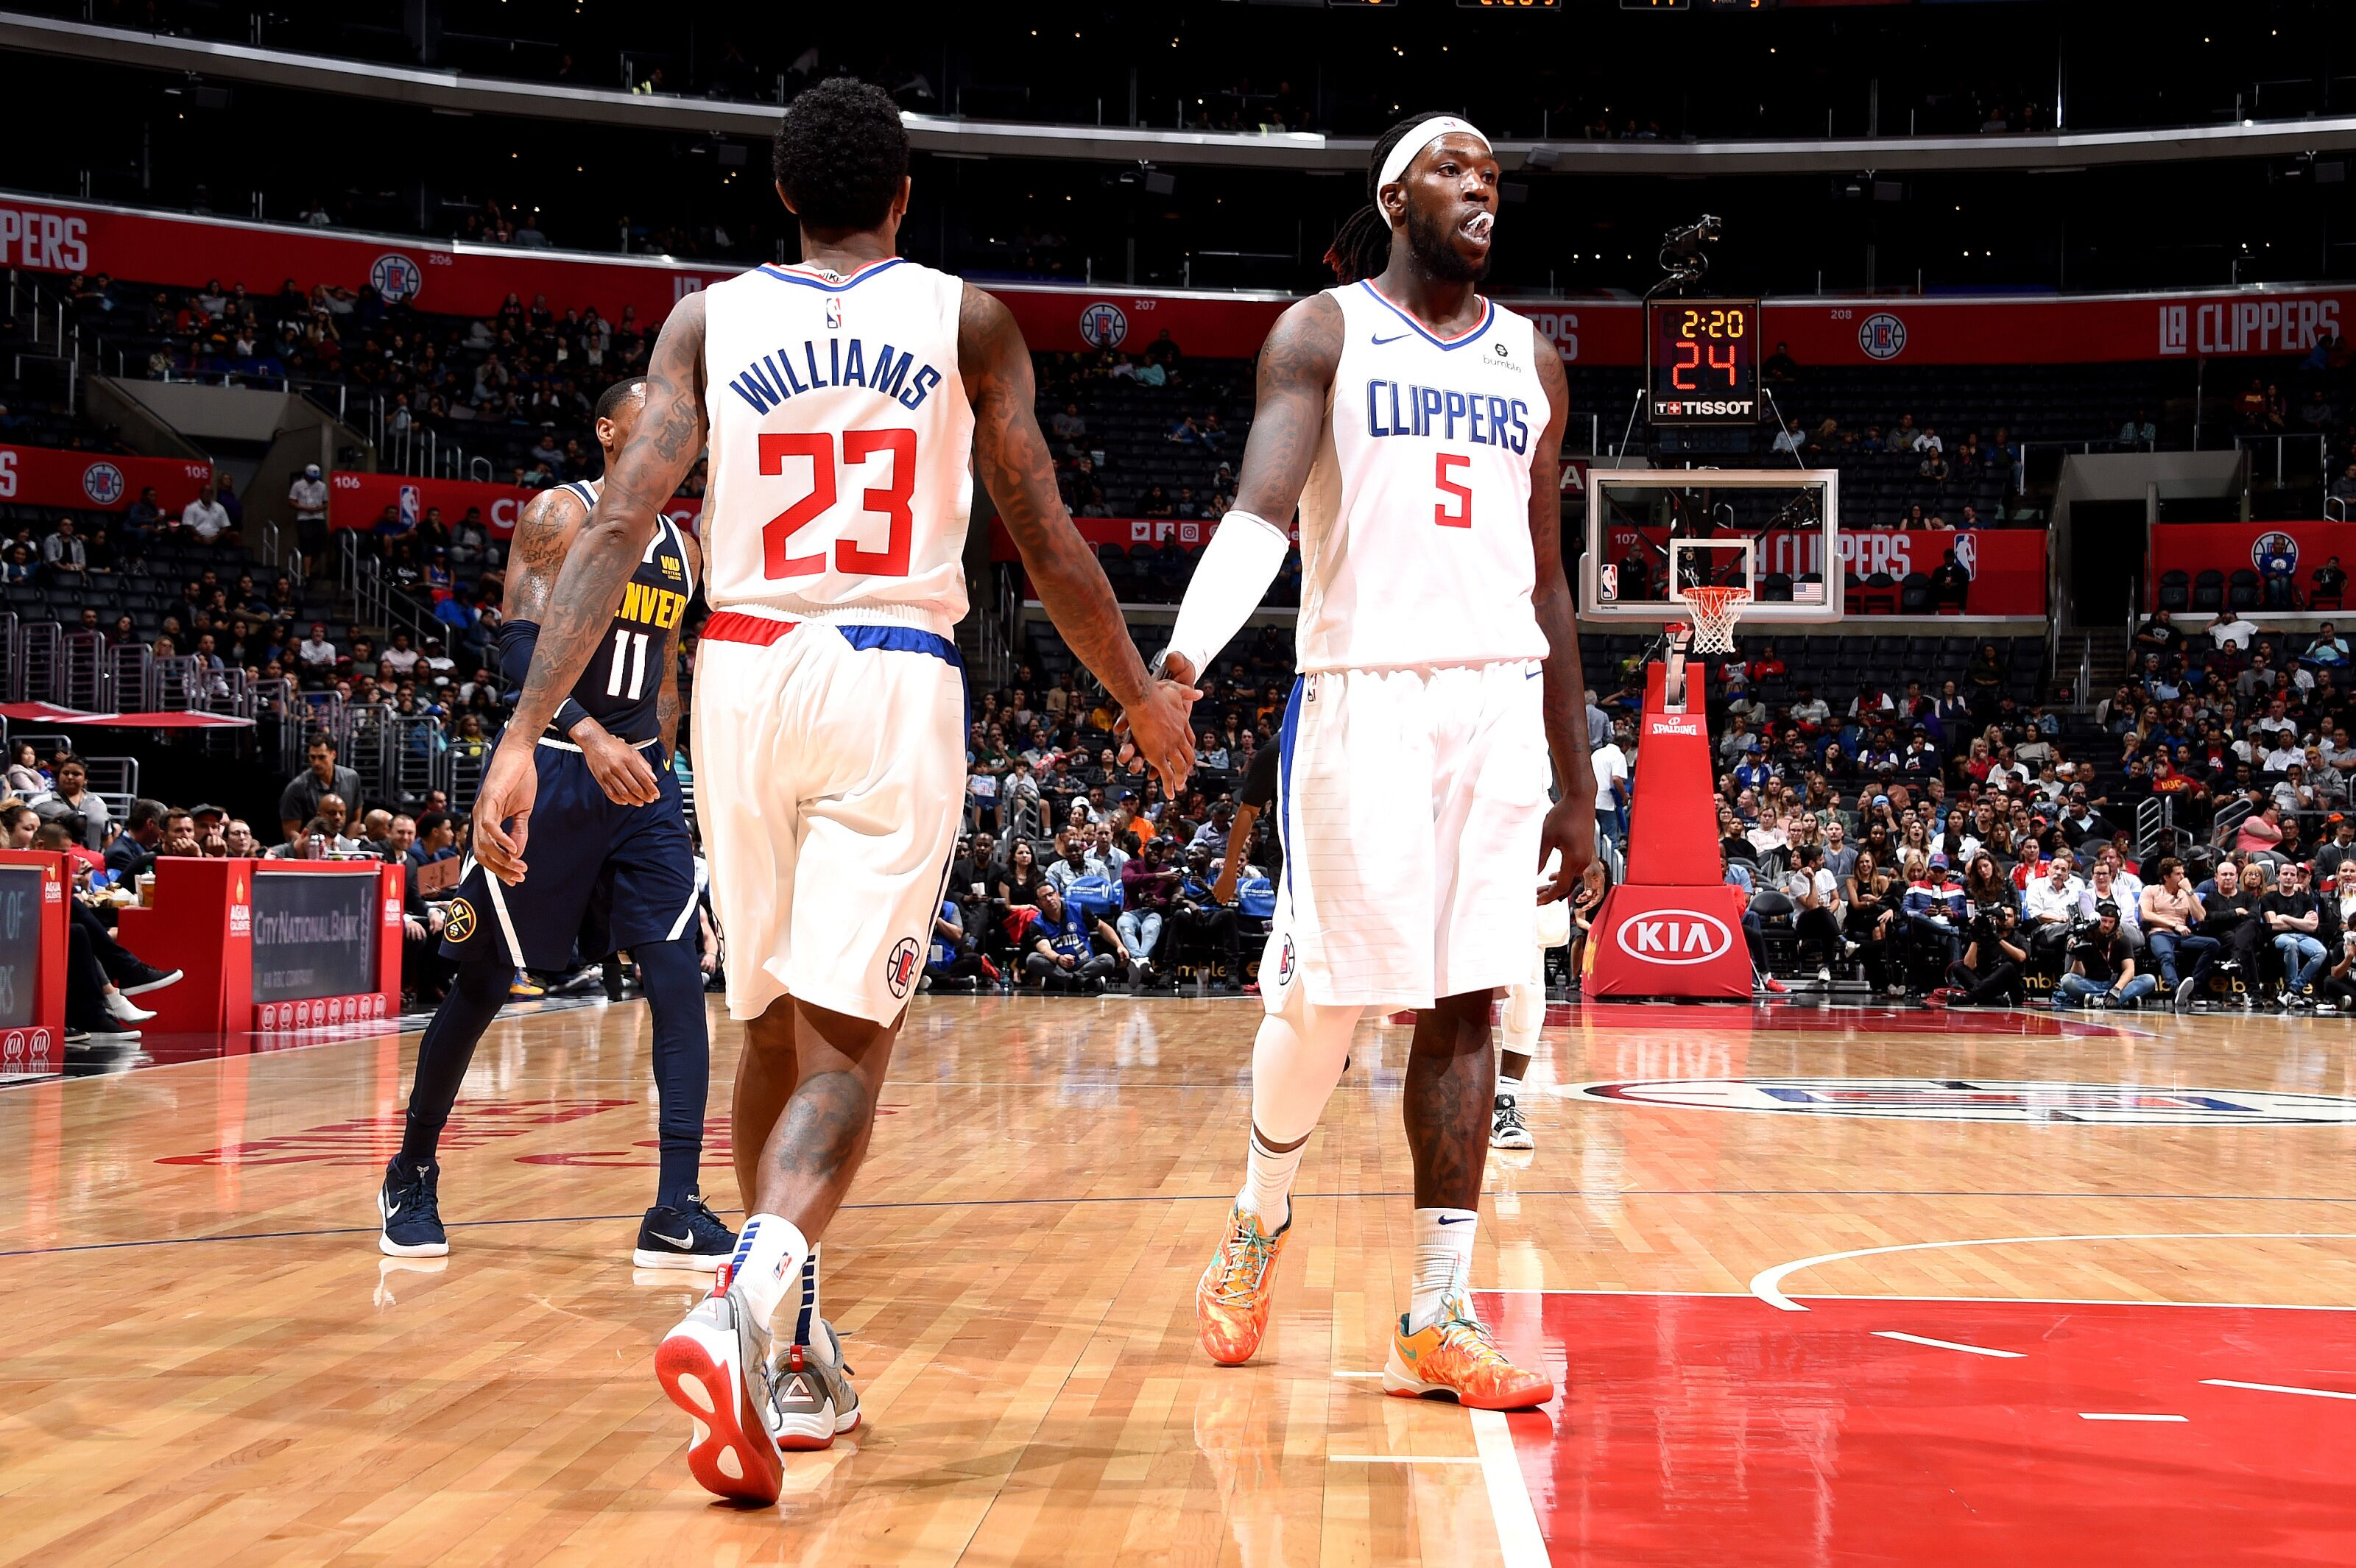 Sports Illustrated underrated a couple of LA Clippers' players